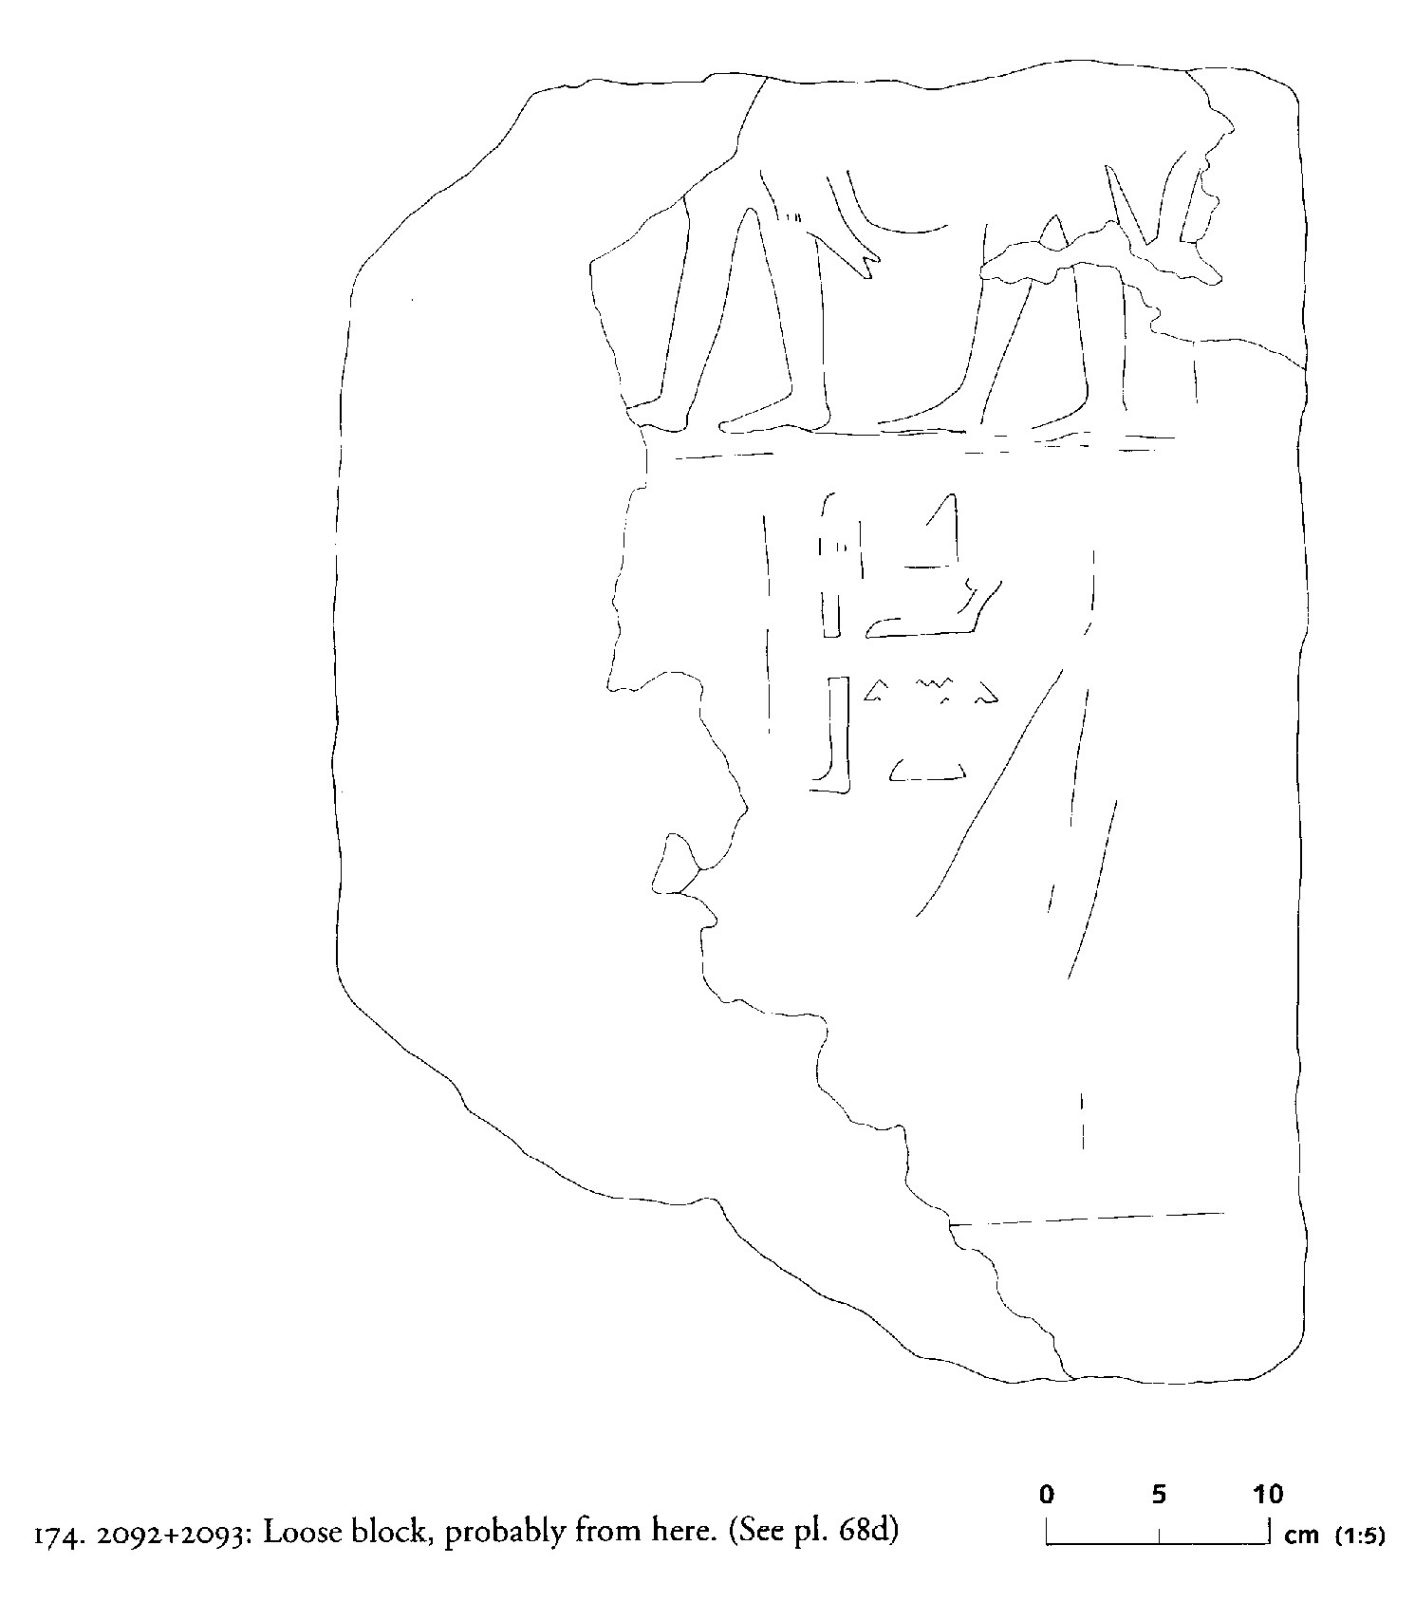 Drawings: G 2092+2093 (likely): relief from loose block